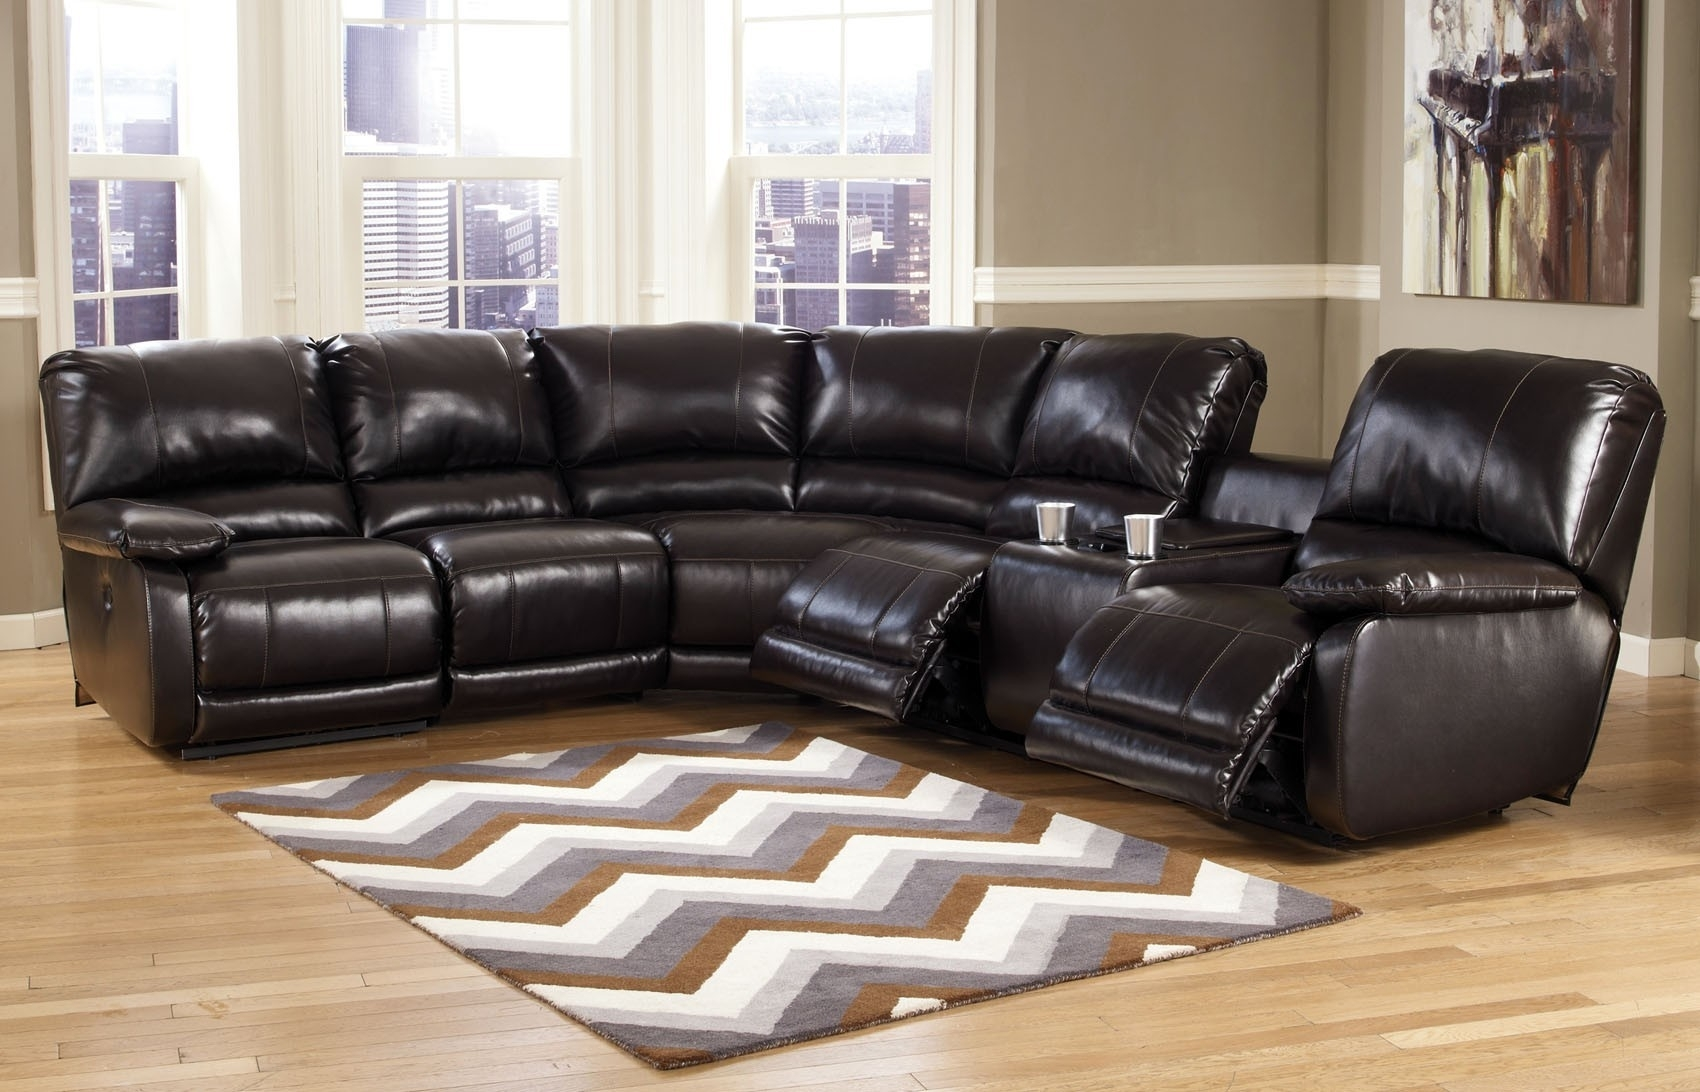 Capote 4 Pc Power Reclining Sectional | Ashley Furniture | Orange Throughout Orange County Ca Sectional Sofas (View 7 of 10)